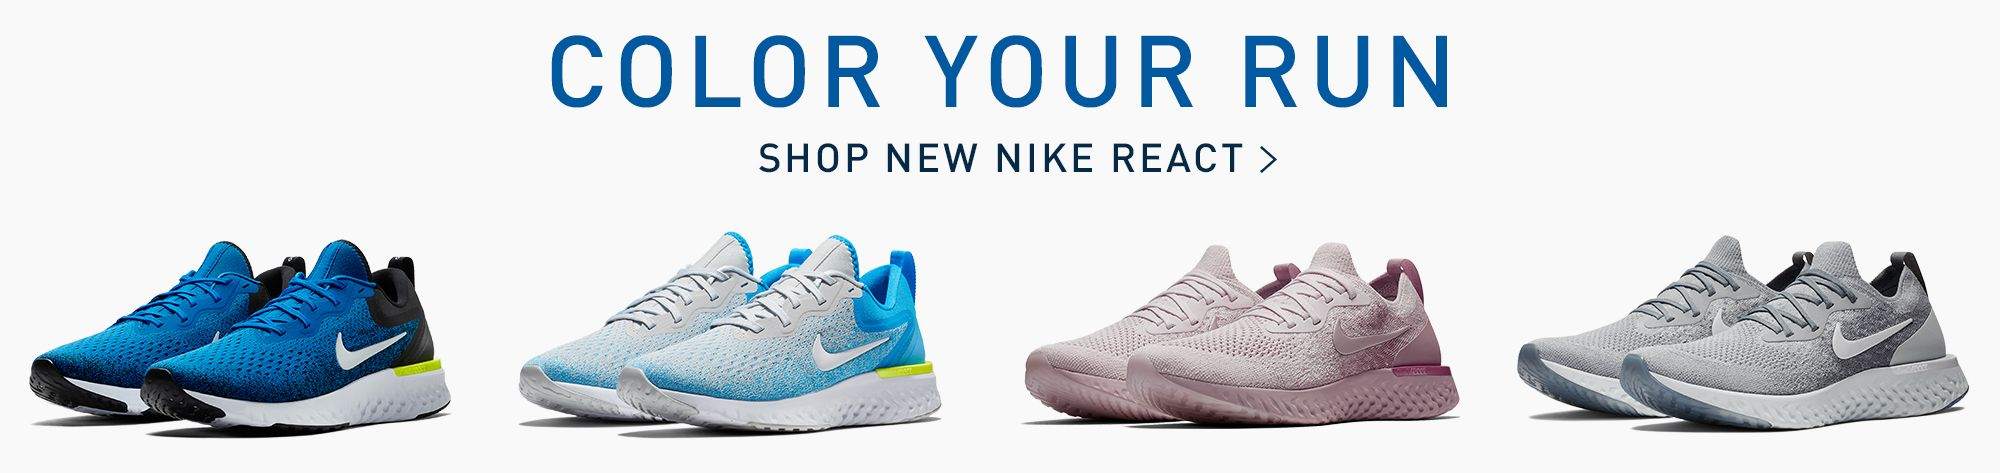 Color Your Run Shop New Nike React